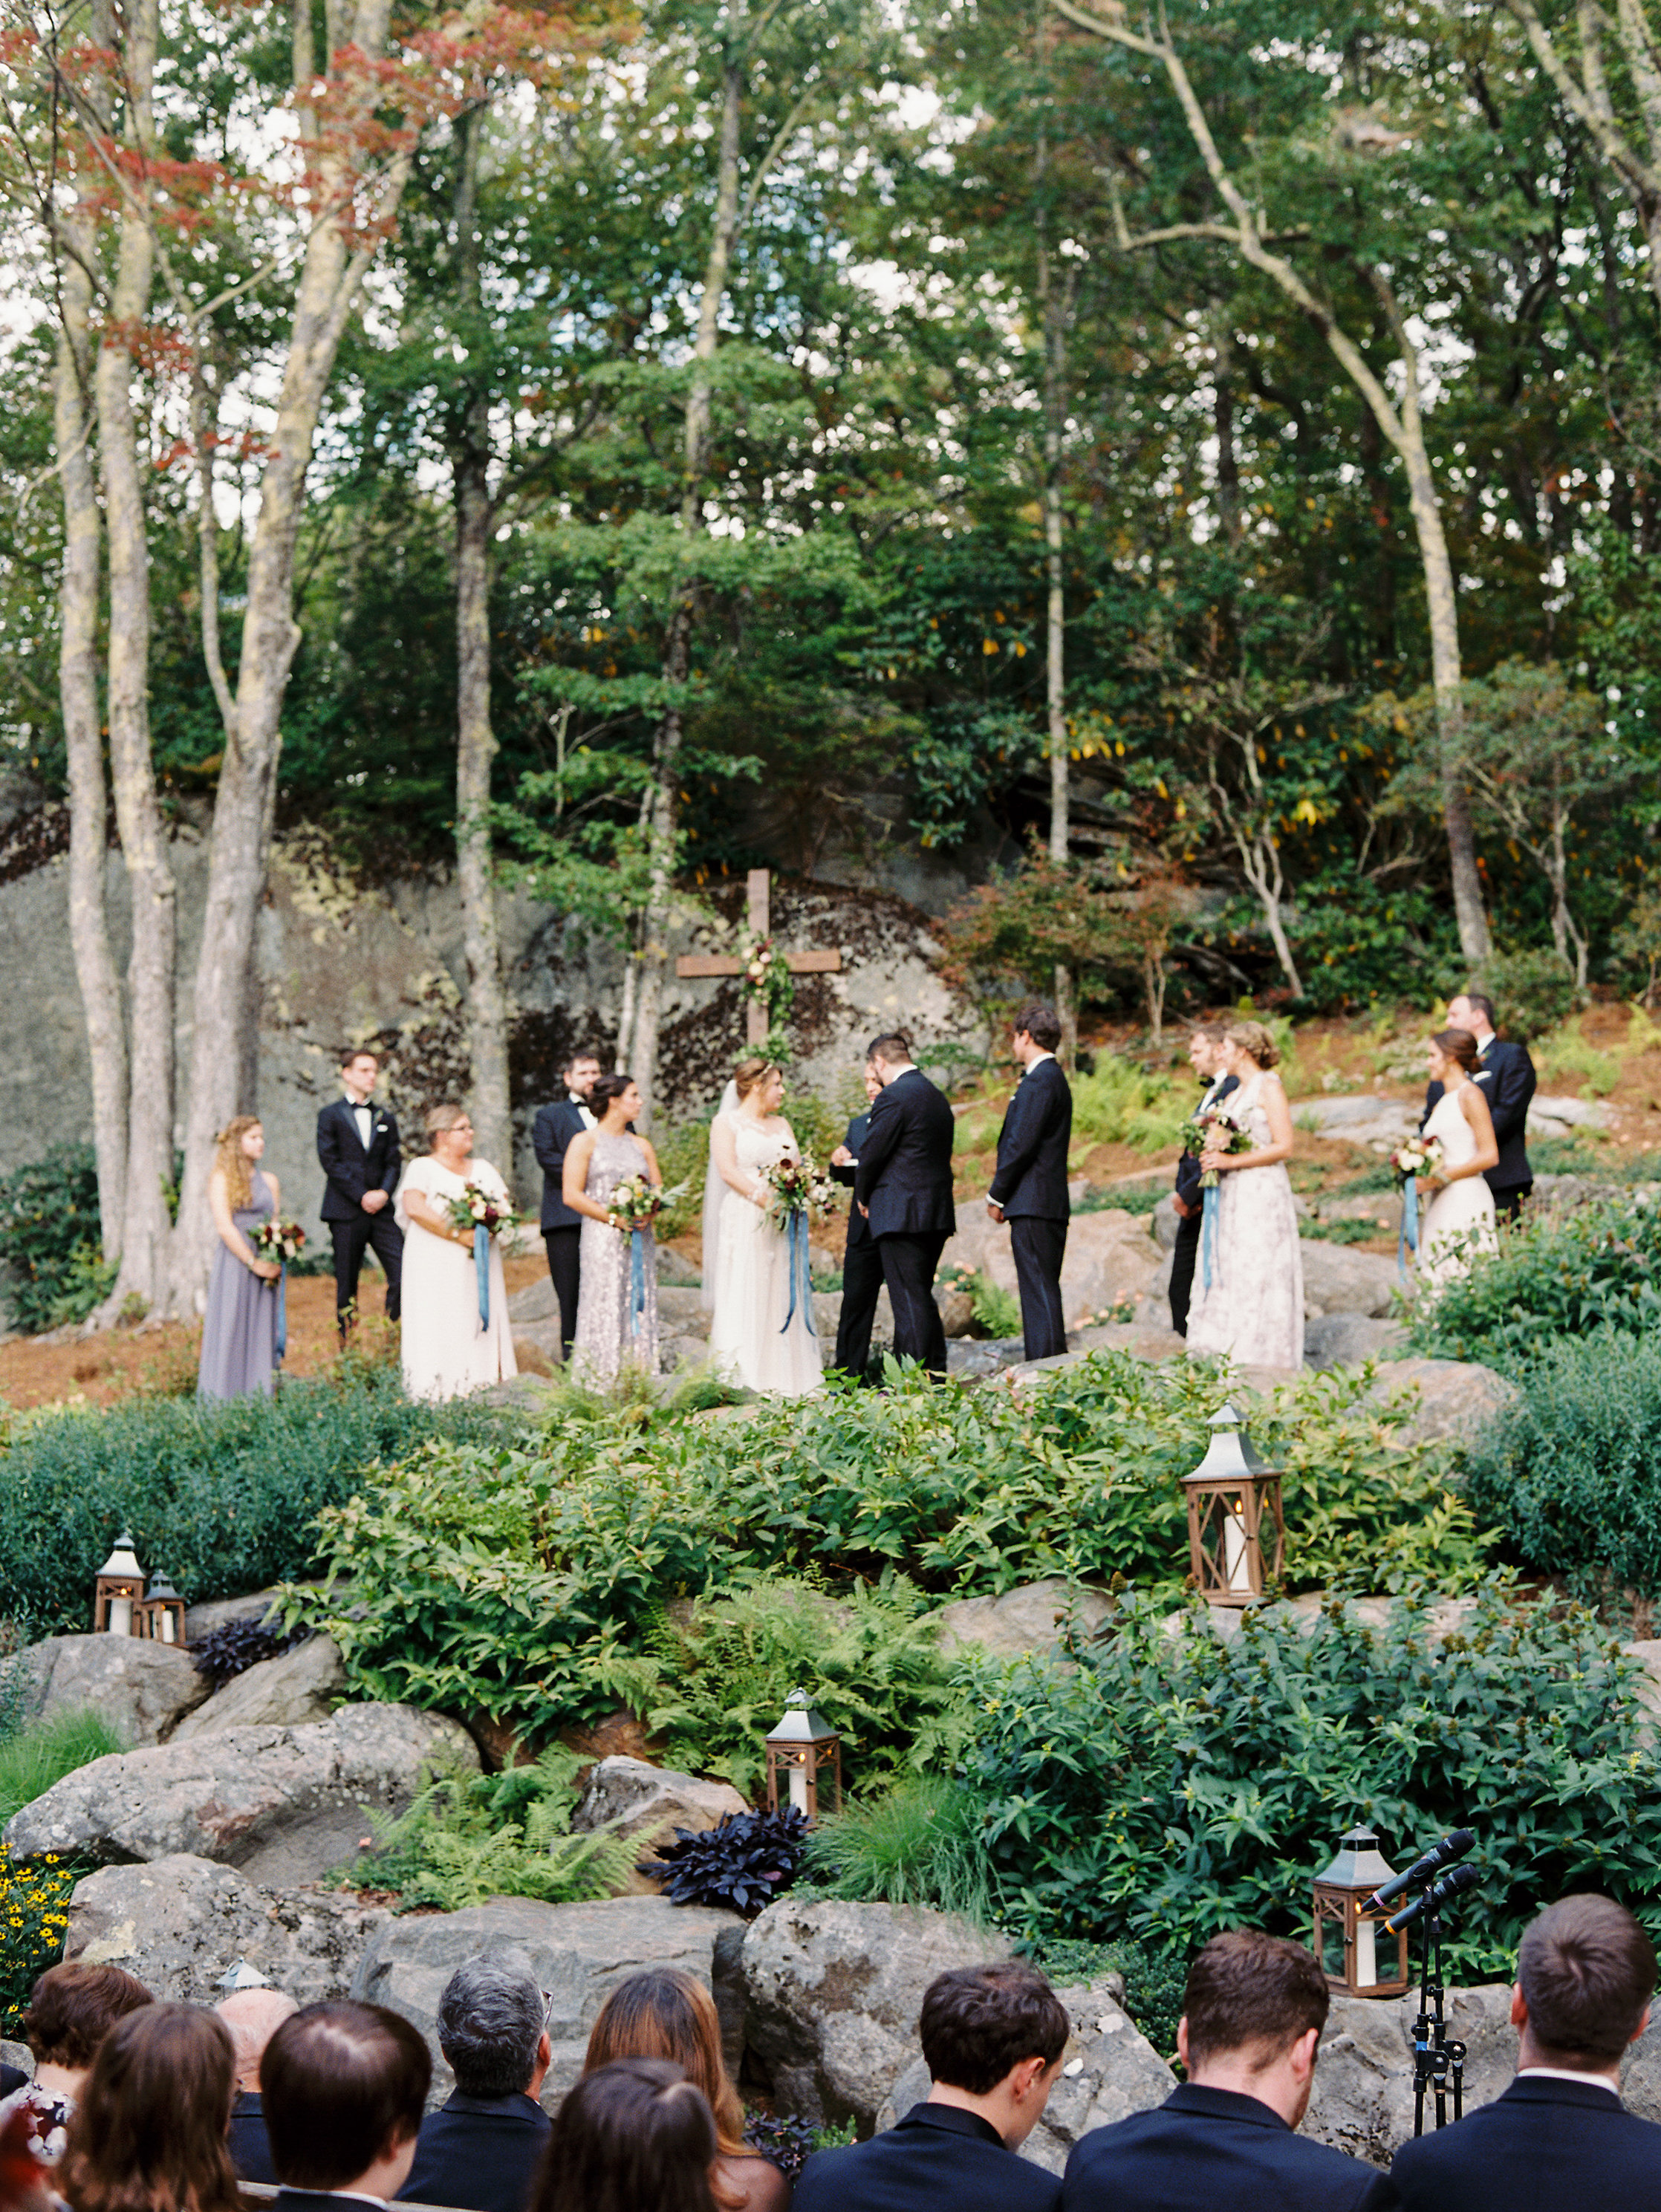 b966b-ncmountainhomeweddingceremonyonmountainncmountainhomeweddingceremonyonmountain.jpg